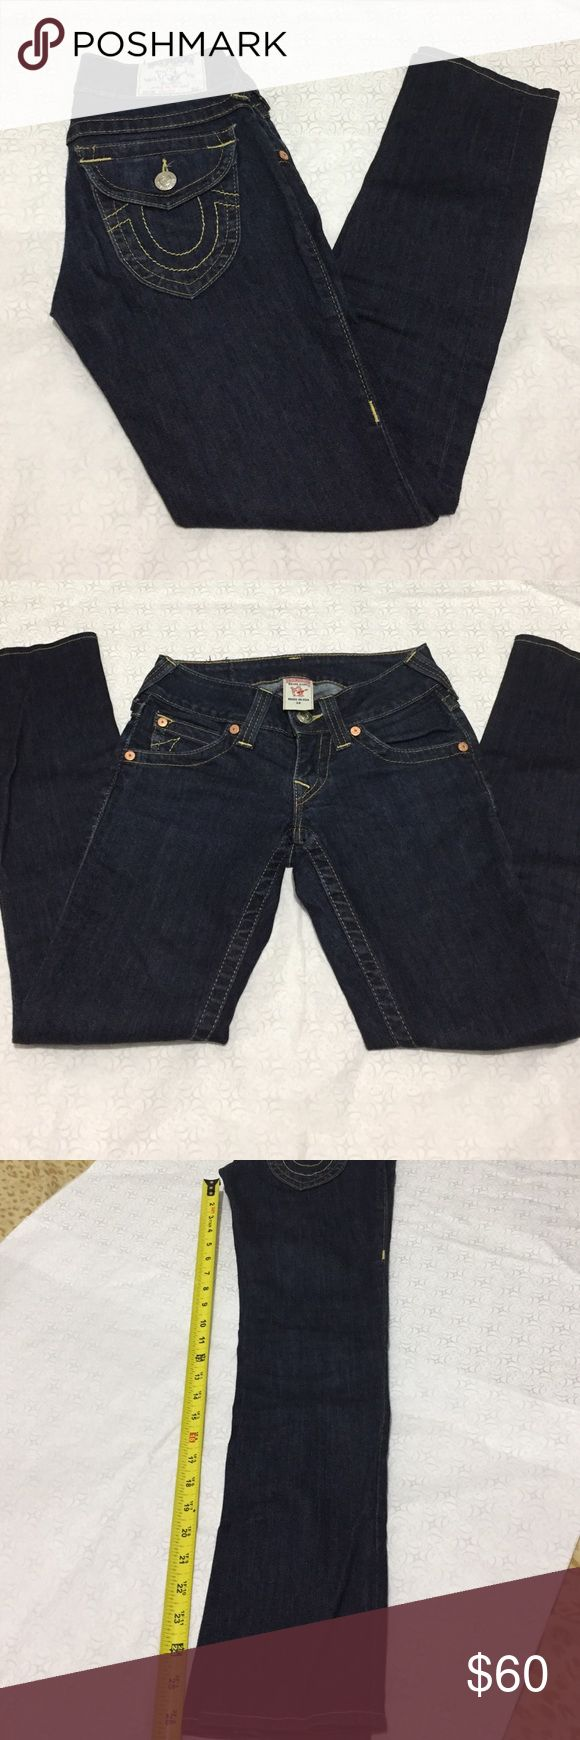 True Religion•Women's Dark Wash Jeans•Size 24 Worn and washed a handful of times. Well cared for and in like new condition. No longer fits me. Inseam length is about 26.5-27 inches (refer to photo). Feel free to ask any questions. Offers welcome. 😊 True Religion Jeans Skinny